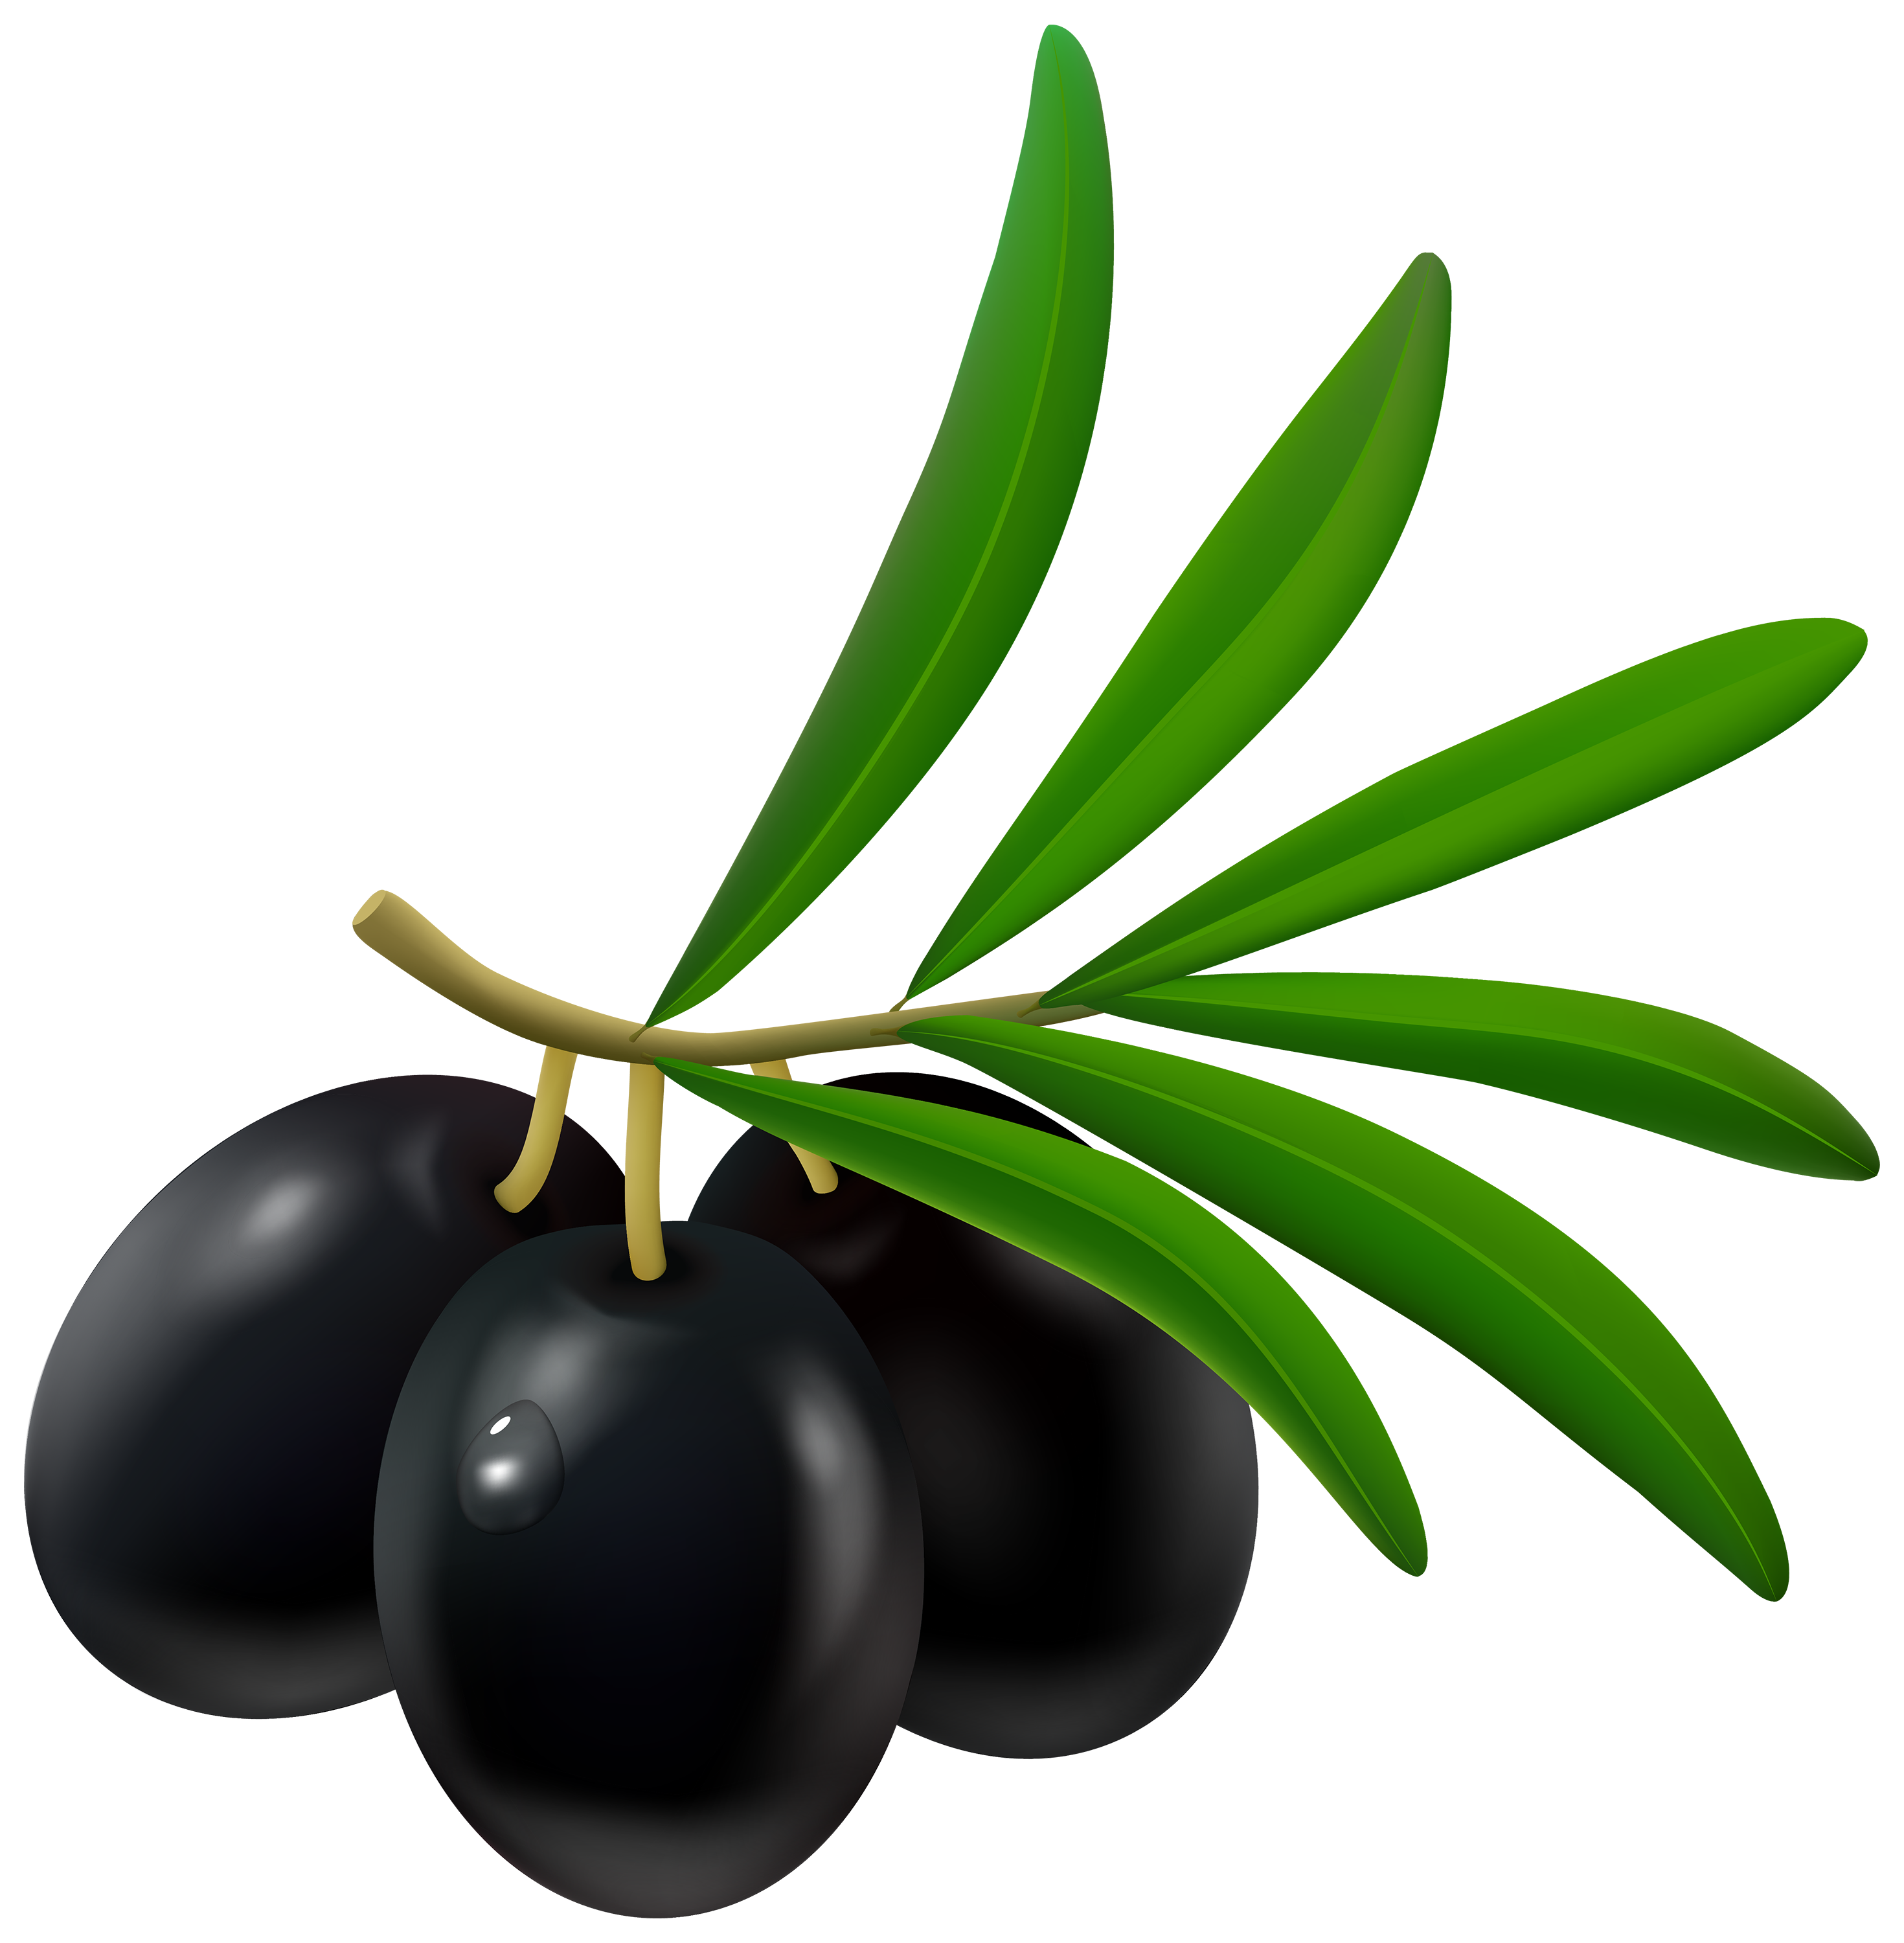 Olives png clipart images gallery for free download.